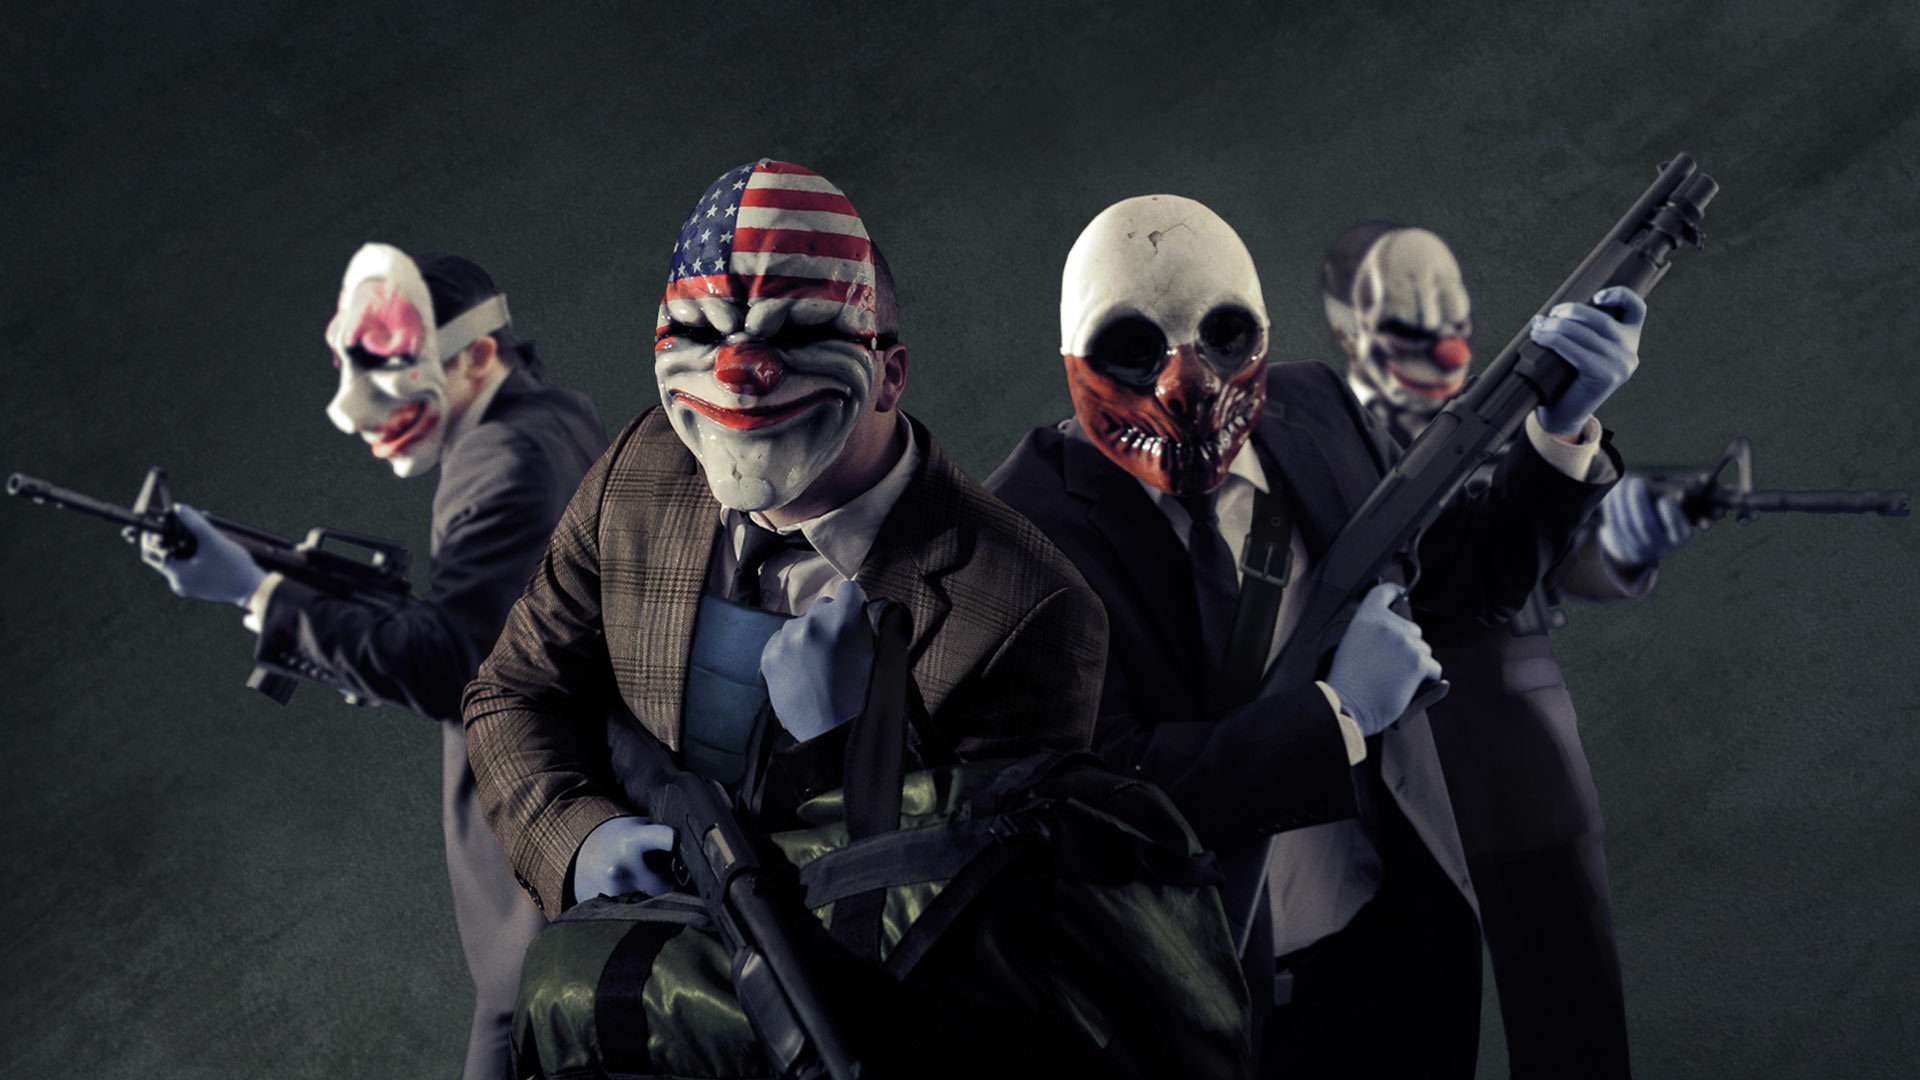 Free Download Payday Wallpaper Id91278 Full Hd 1920x1080